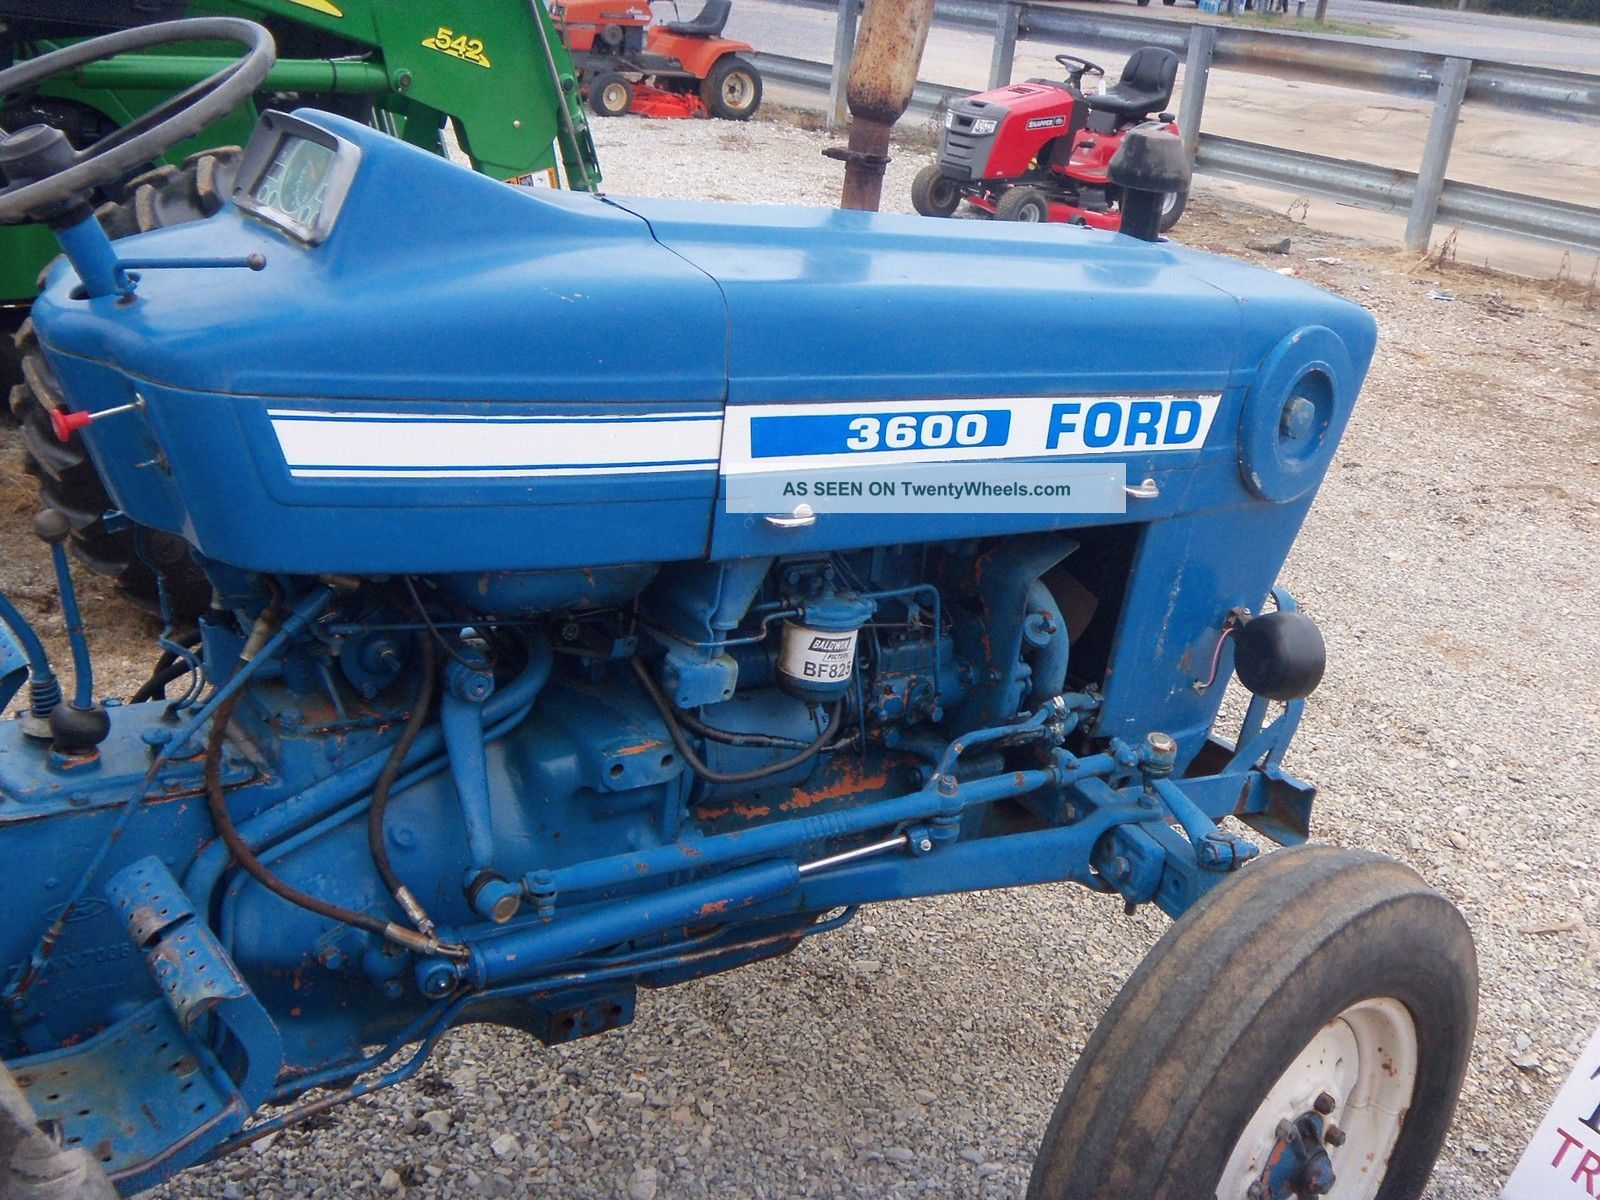 Ford 3600 Tractor Data : Ford tractor